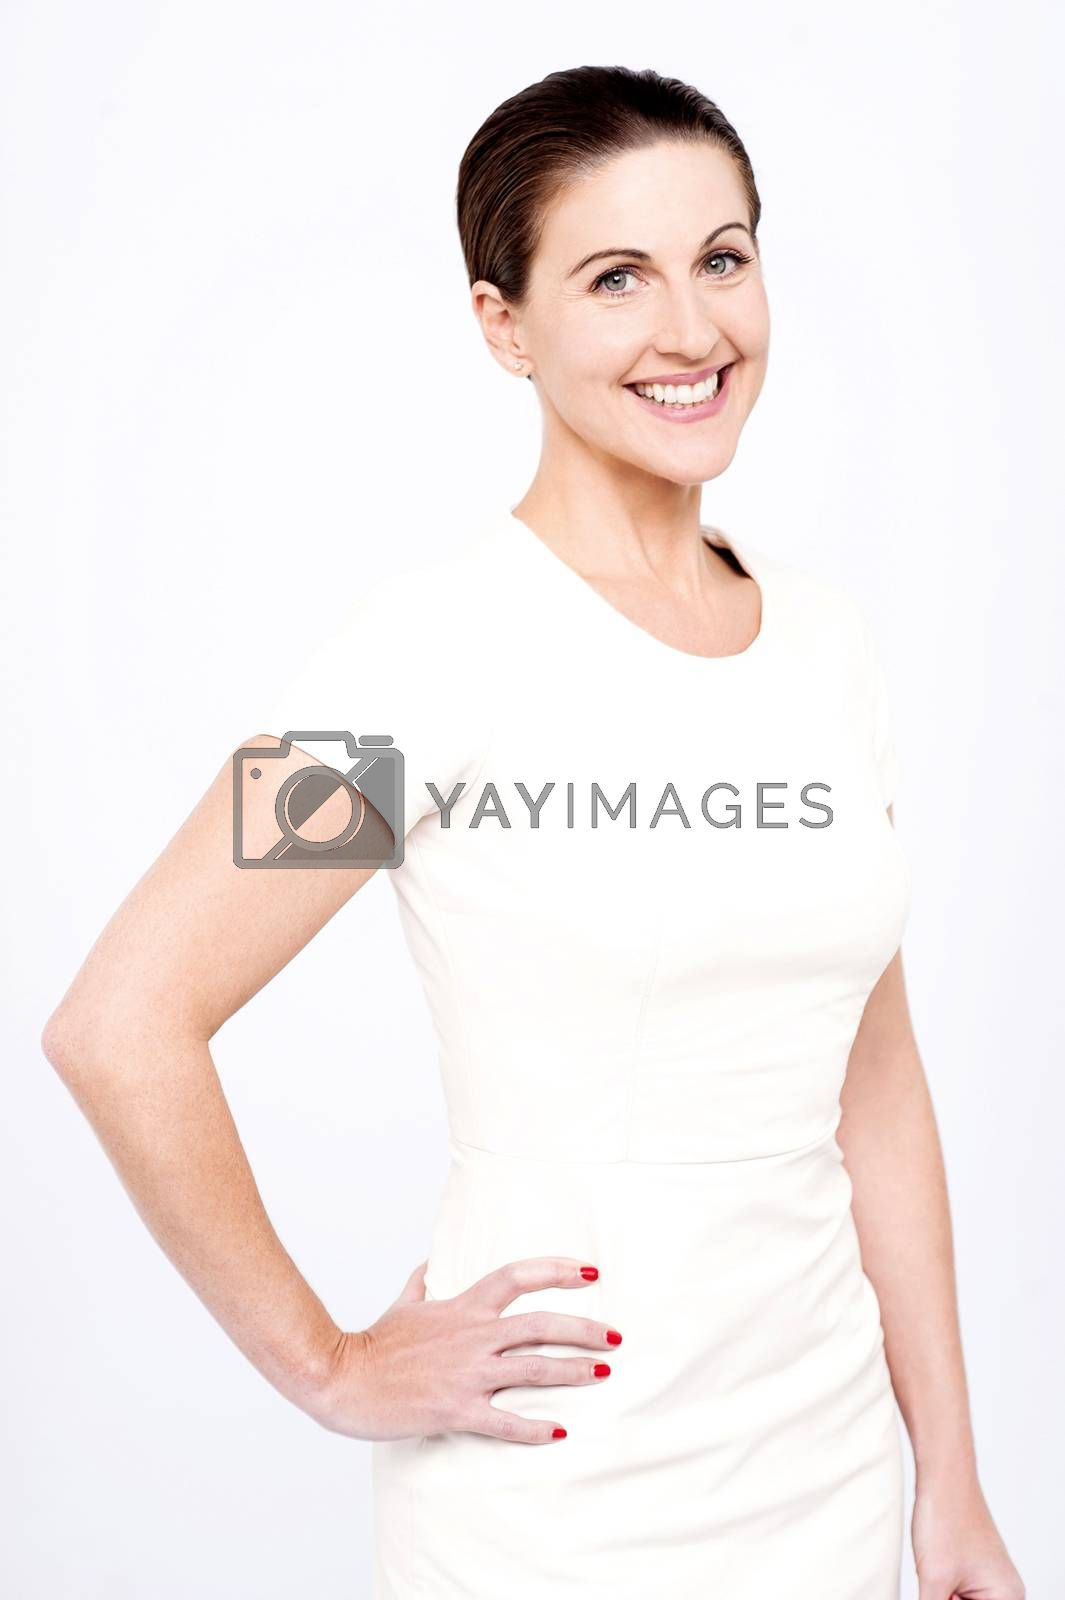 Stylish woman posing with hands on her hips